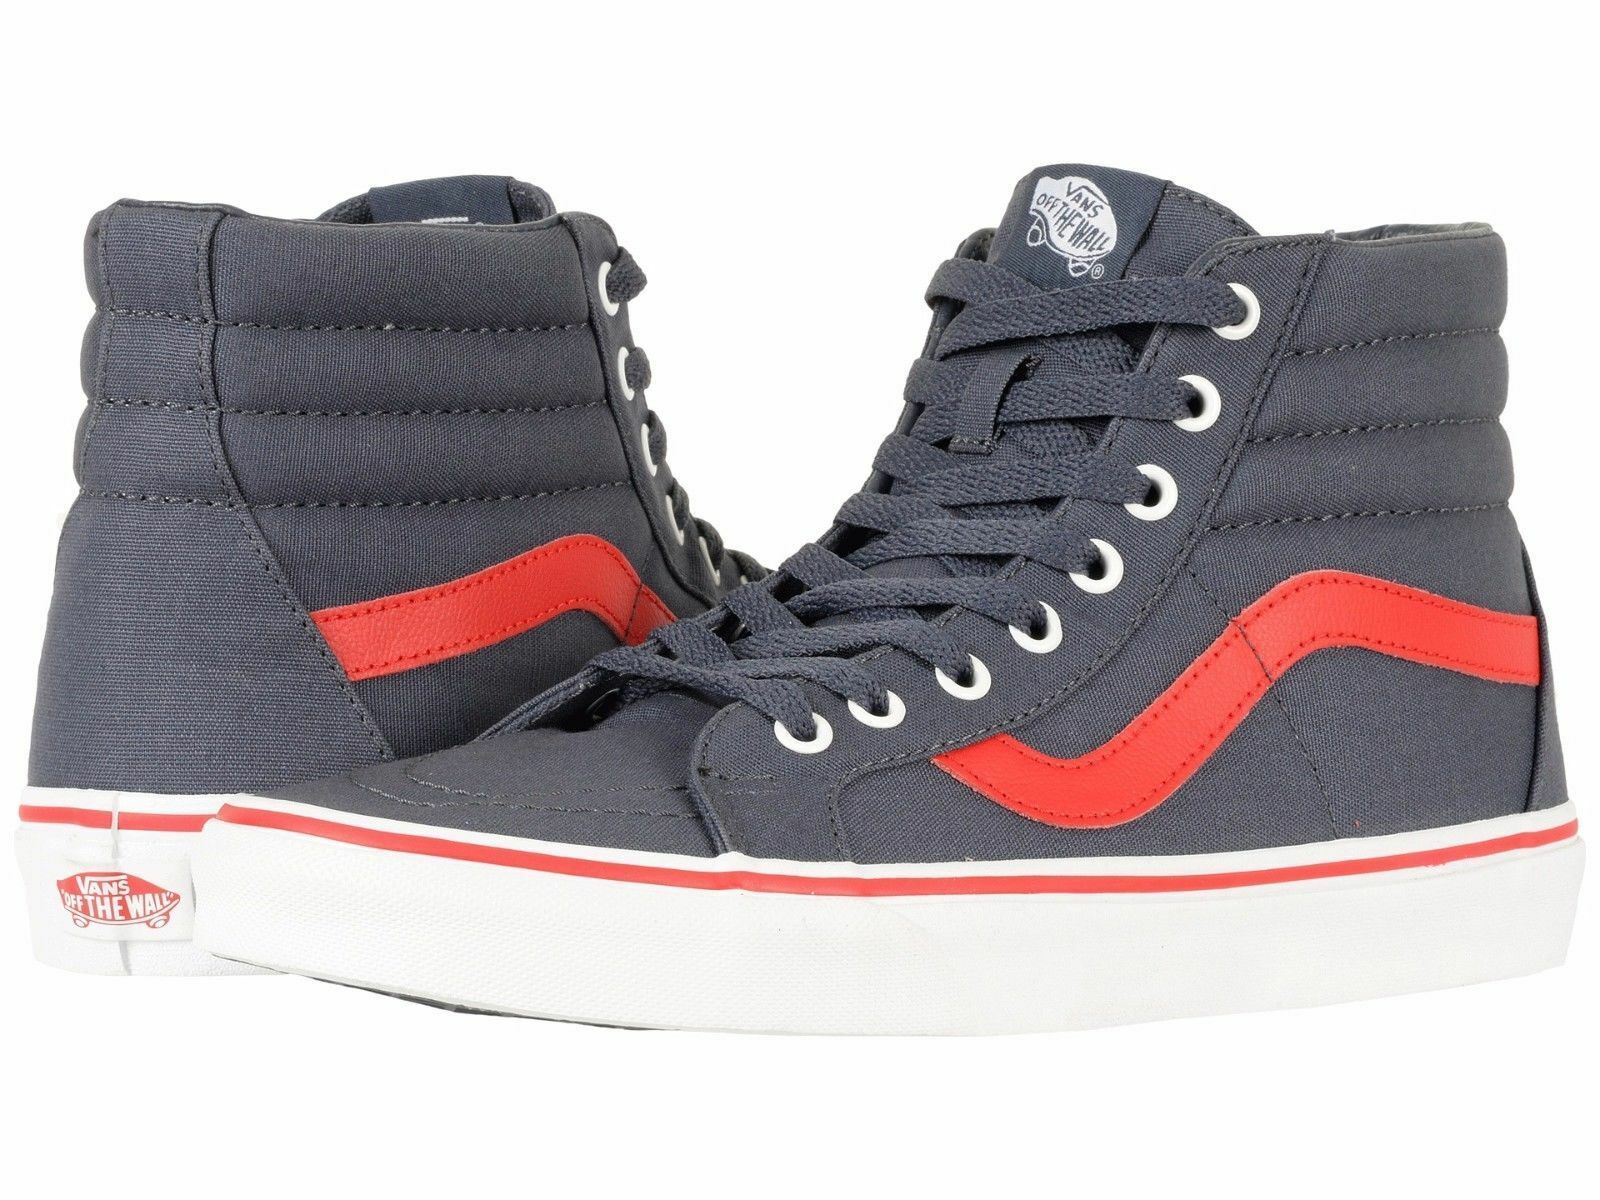 VANS SK8 HI REISSUE POP SKATE GREY SNEAKERS Uomo SHOES GREY SKATE VN0A2XSBM34 SIZE 13 NEW 27a9c3